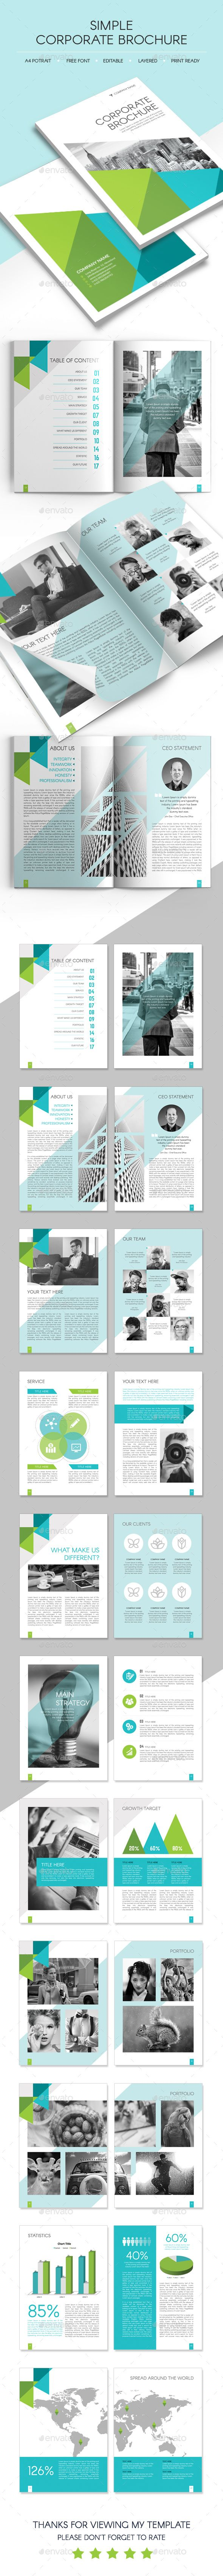 Simple Corporate Brochure Template #design Download: graphicprime.com/...